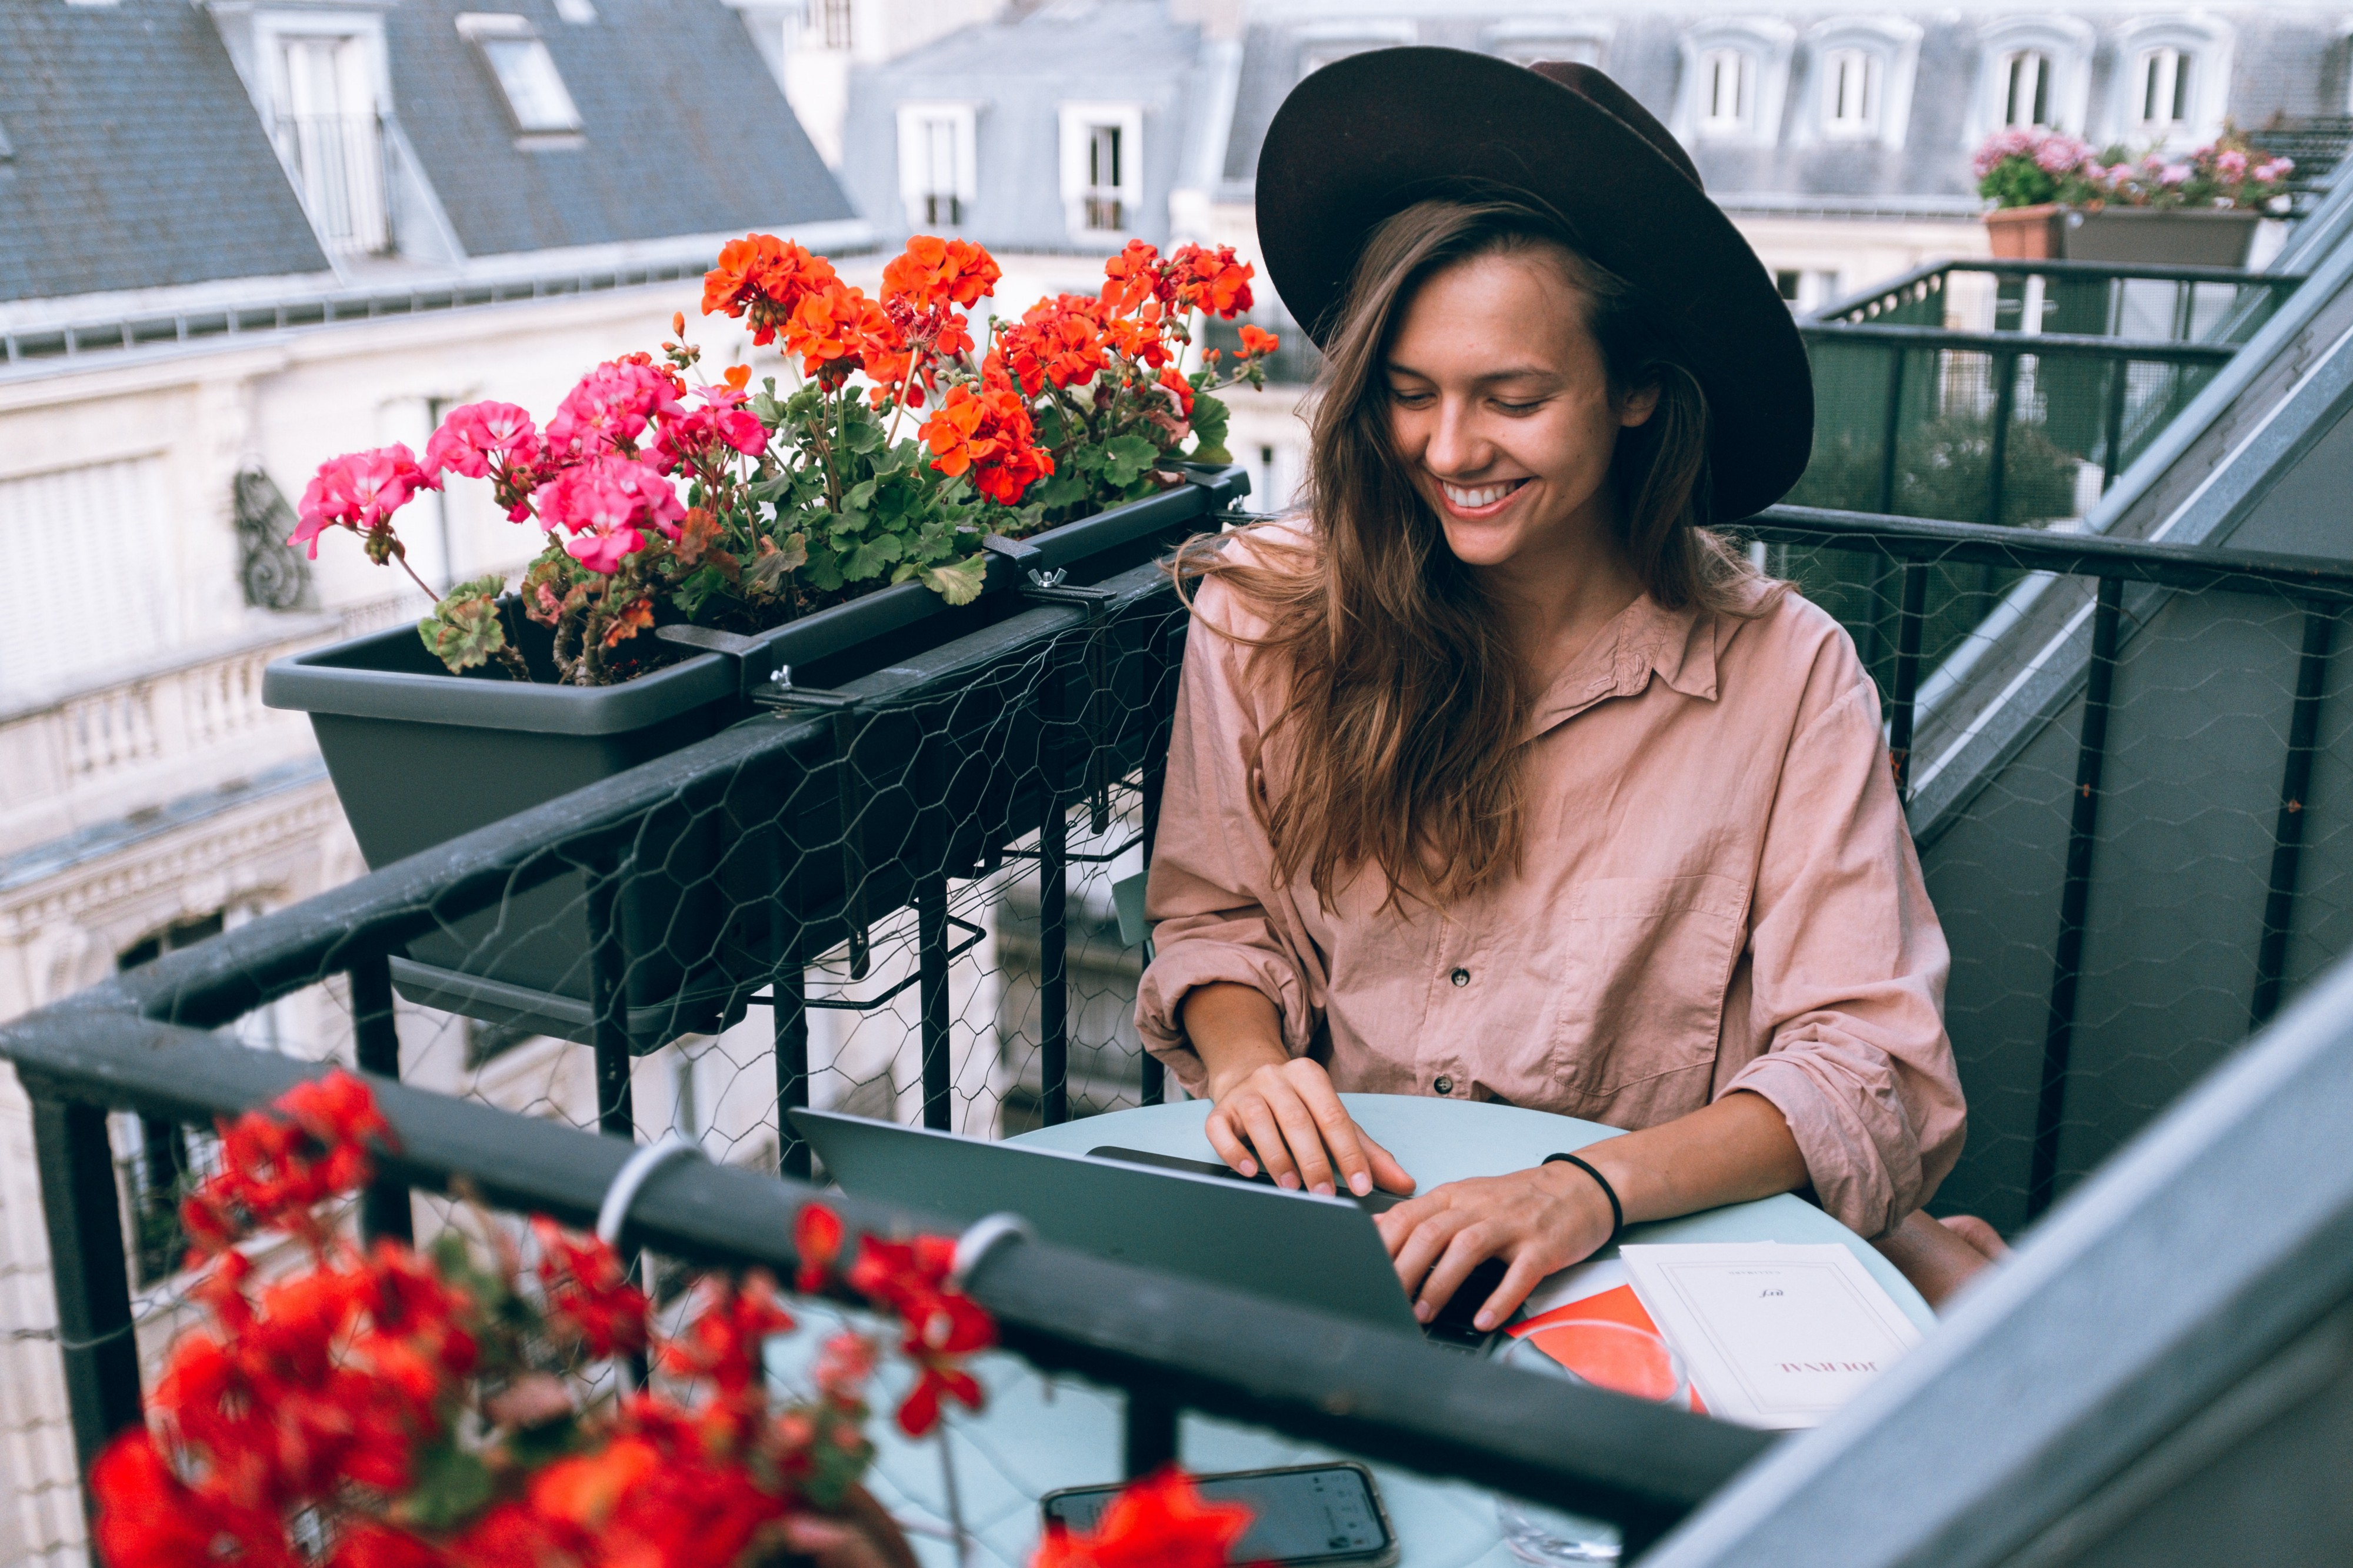 smiling woman sitting on a balcony writing on laptop and surrounded by flowers in window boxes